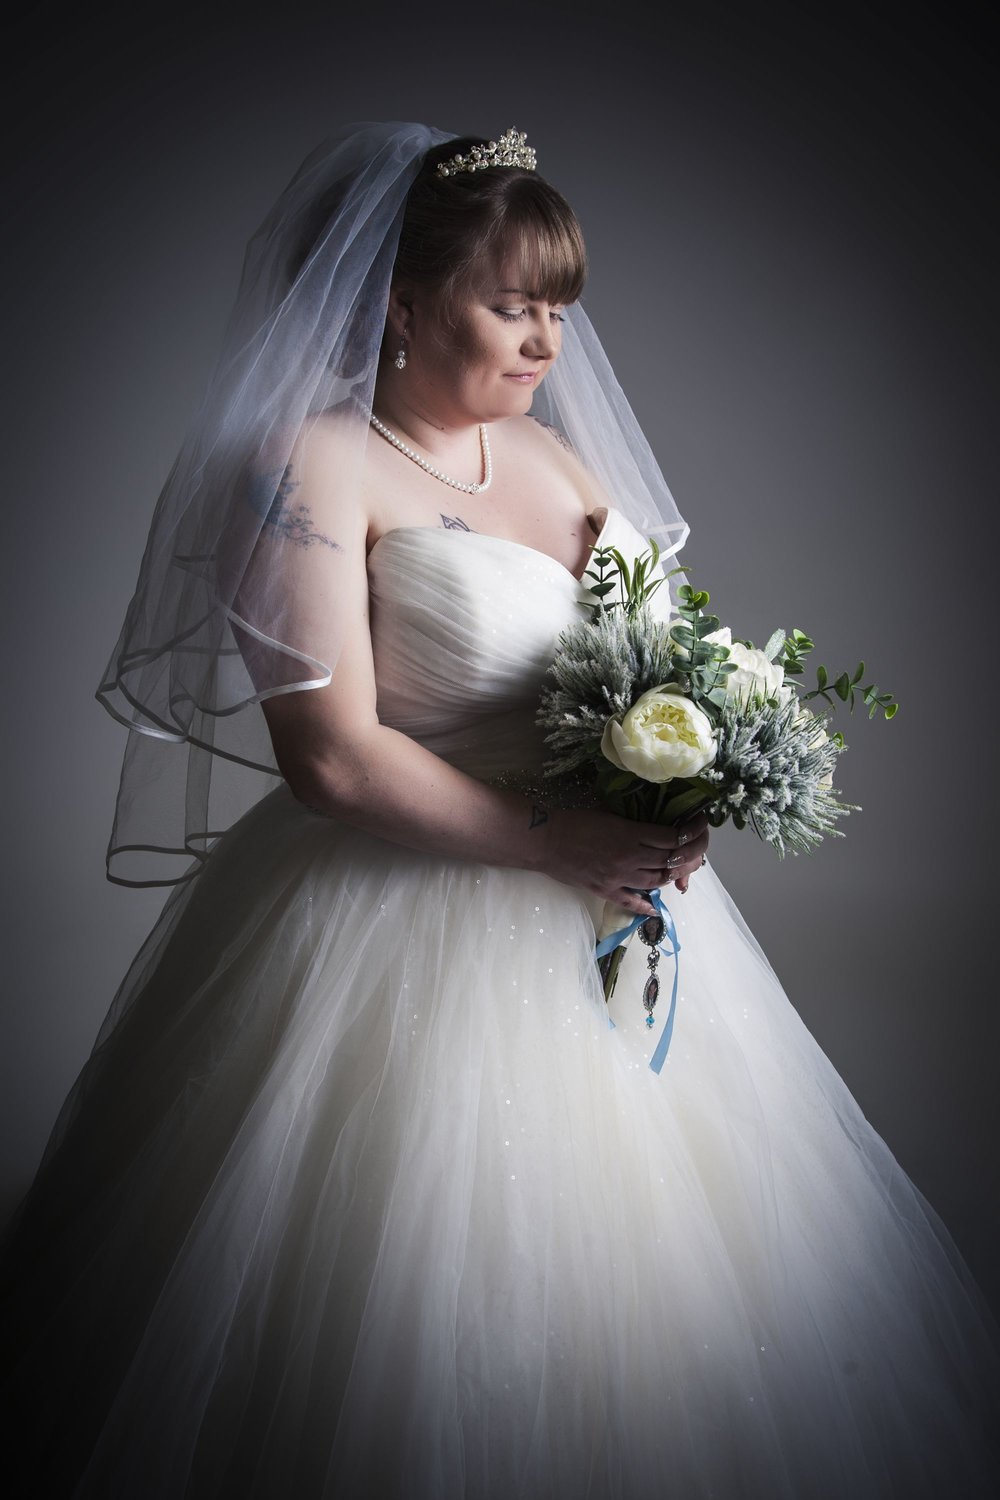 zigzag-zig-zag-photography-leicester-wedding-dress-photo-image-photographer-photo-shoot-studio.JPG